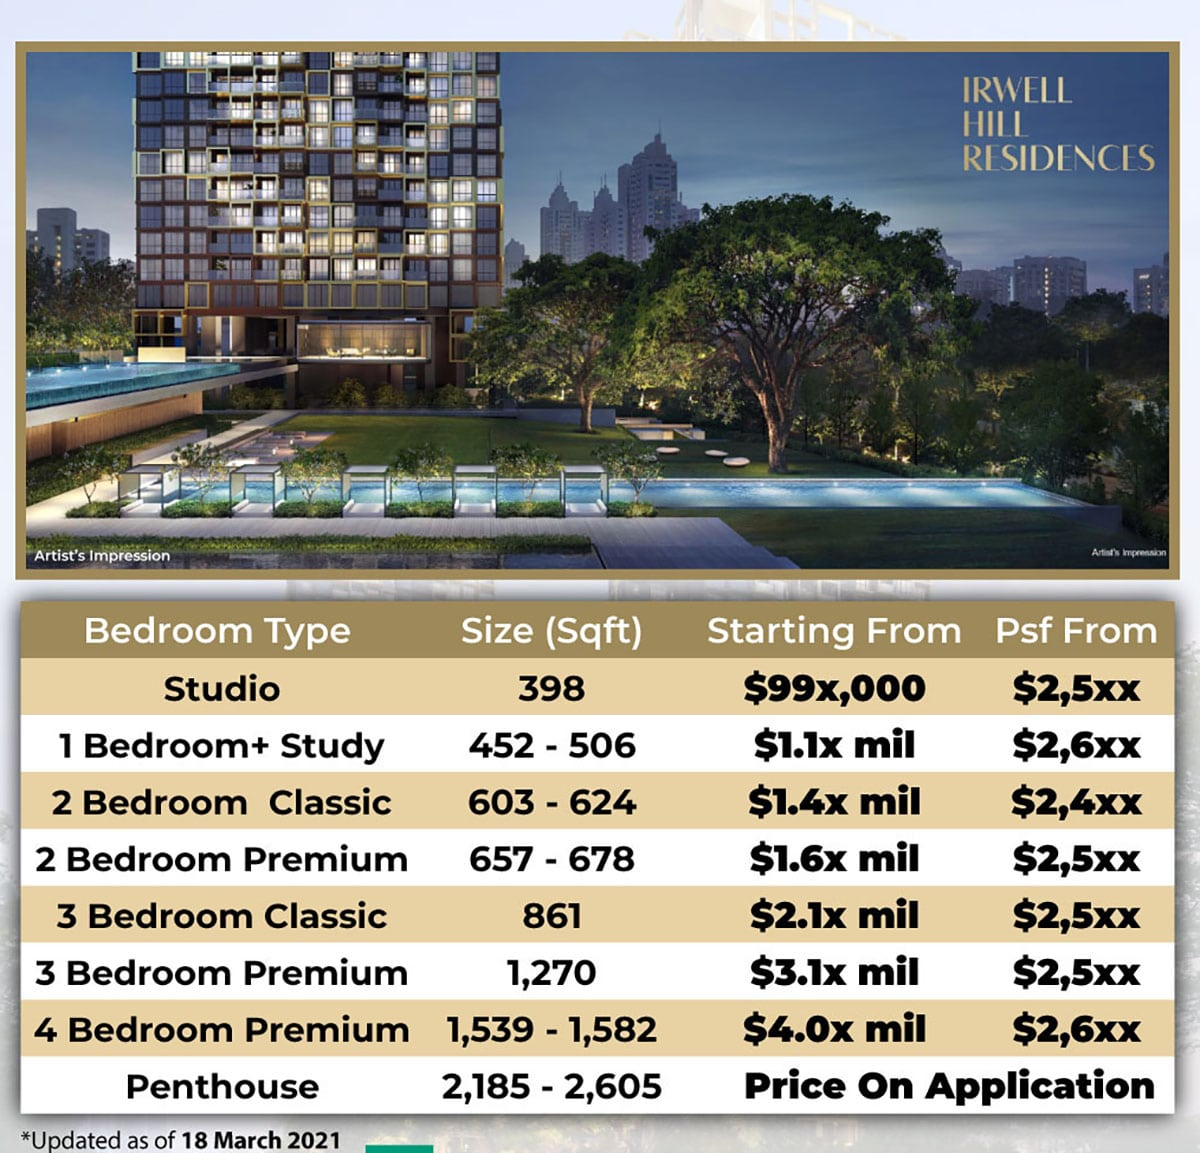 Irwell Hill Residences Indicative Price Estimate at Launch